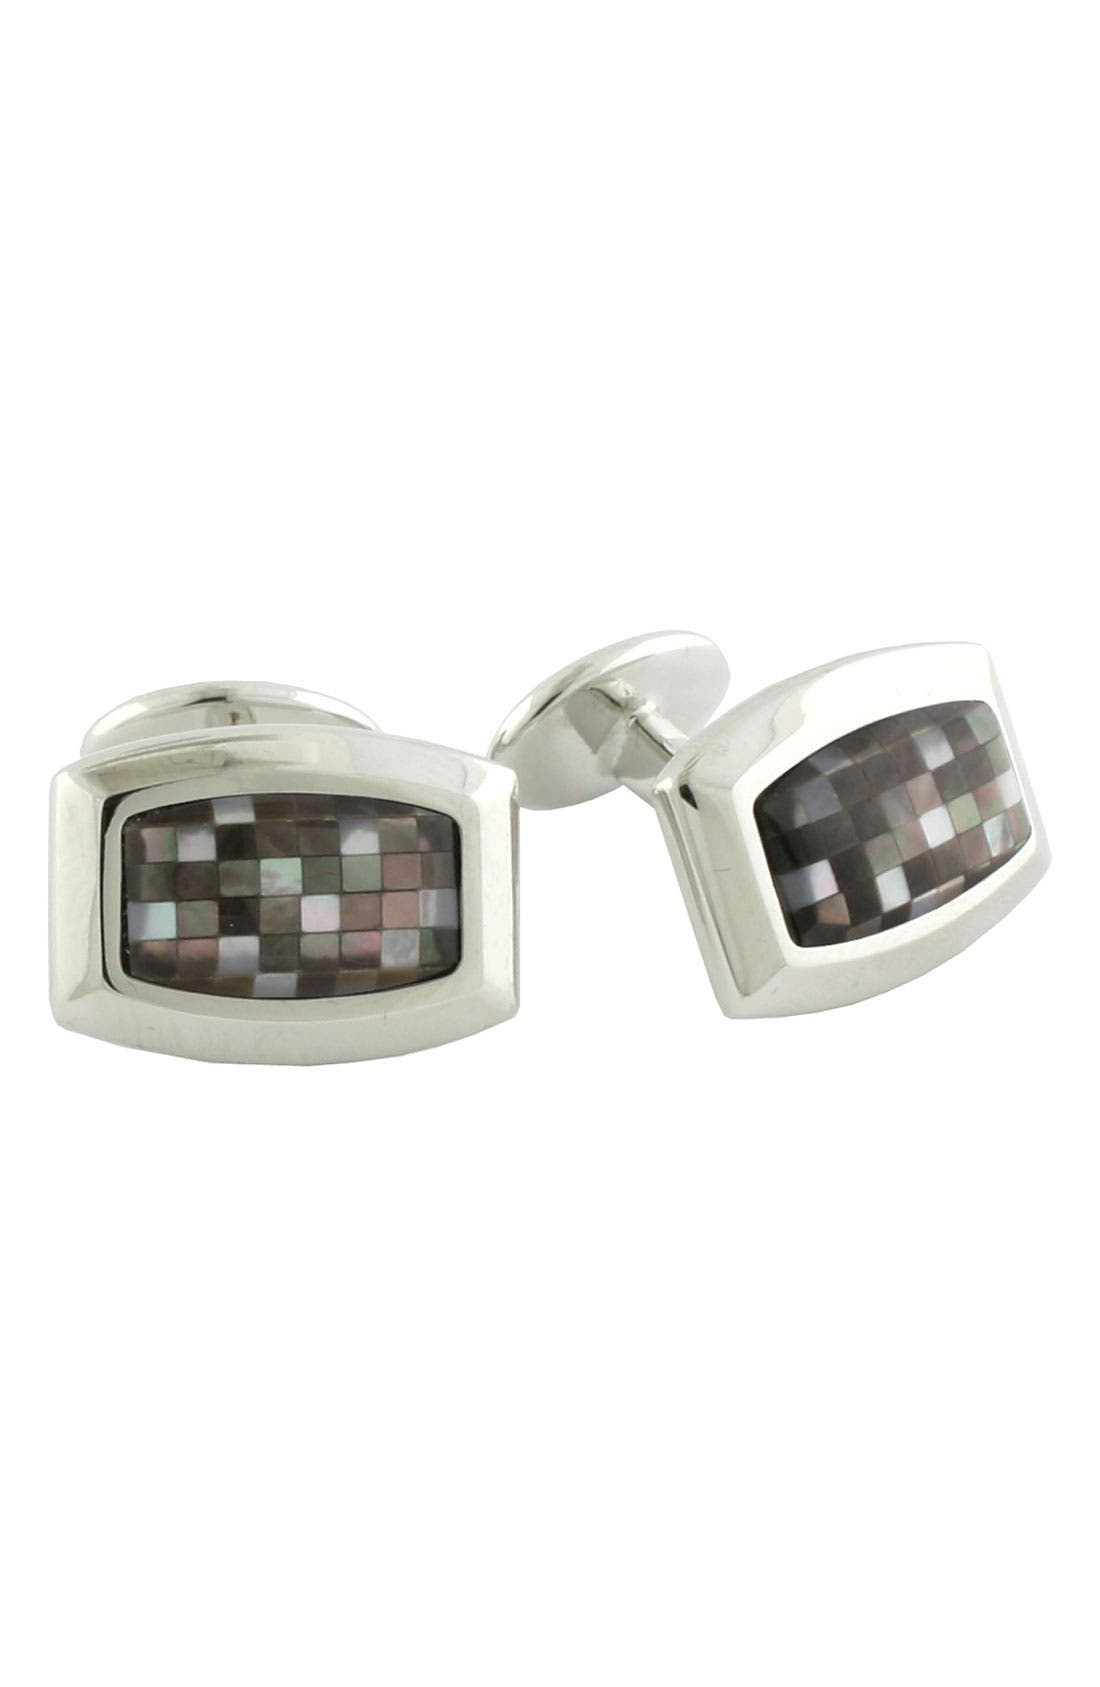 Alternate Image 1 Selected - David Donahue Rounded Rectangle Sterling Silver Cuff Links